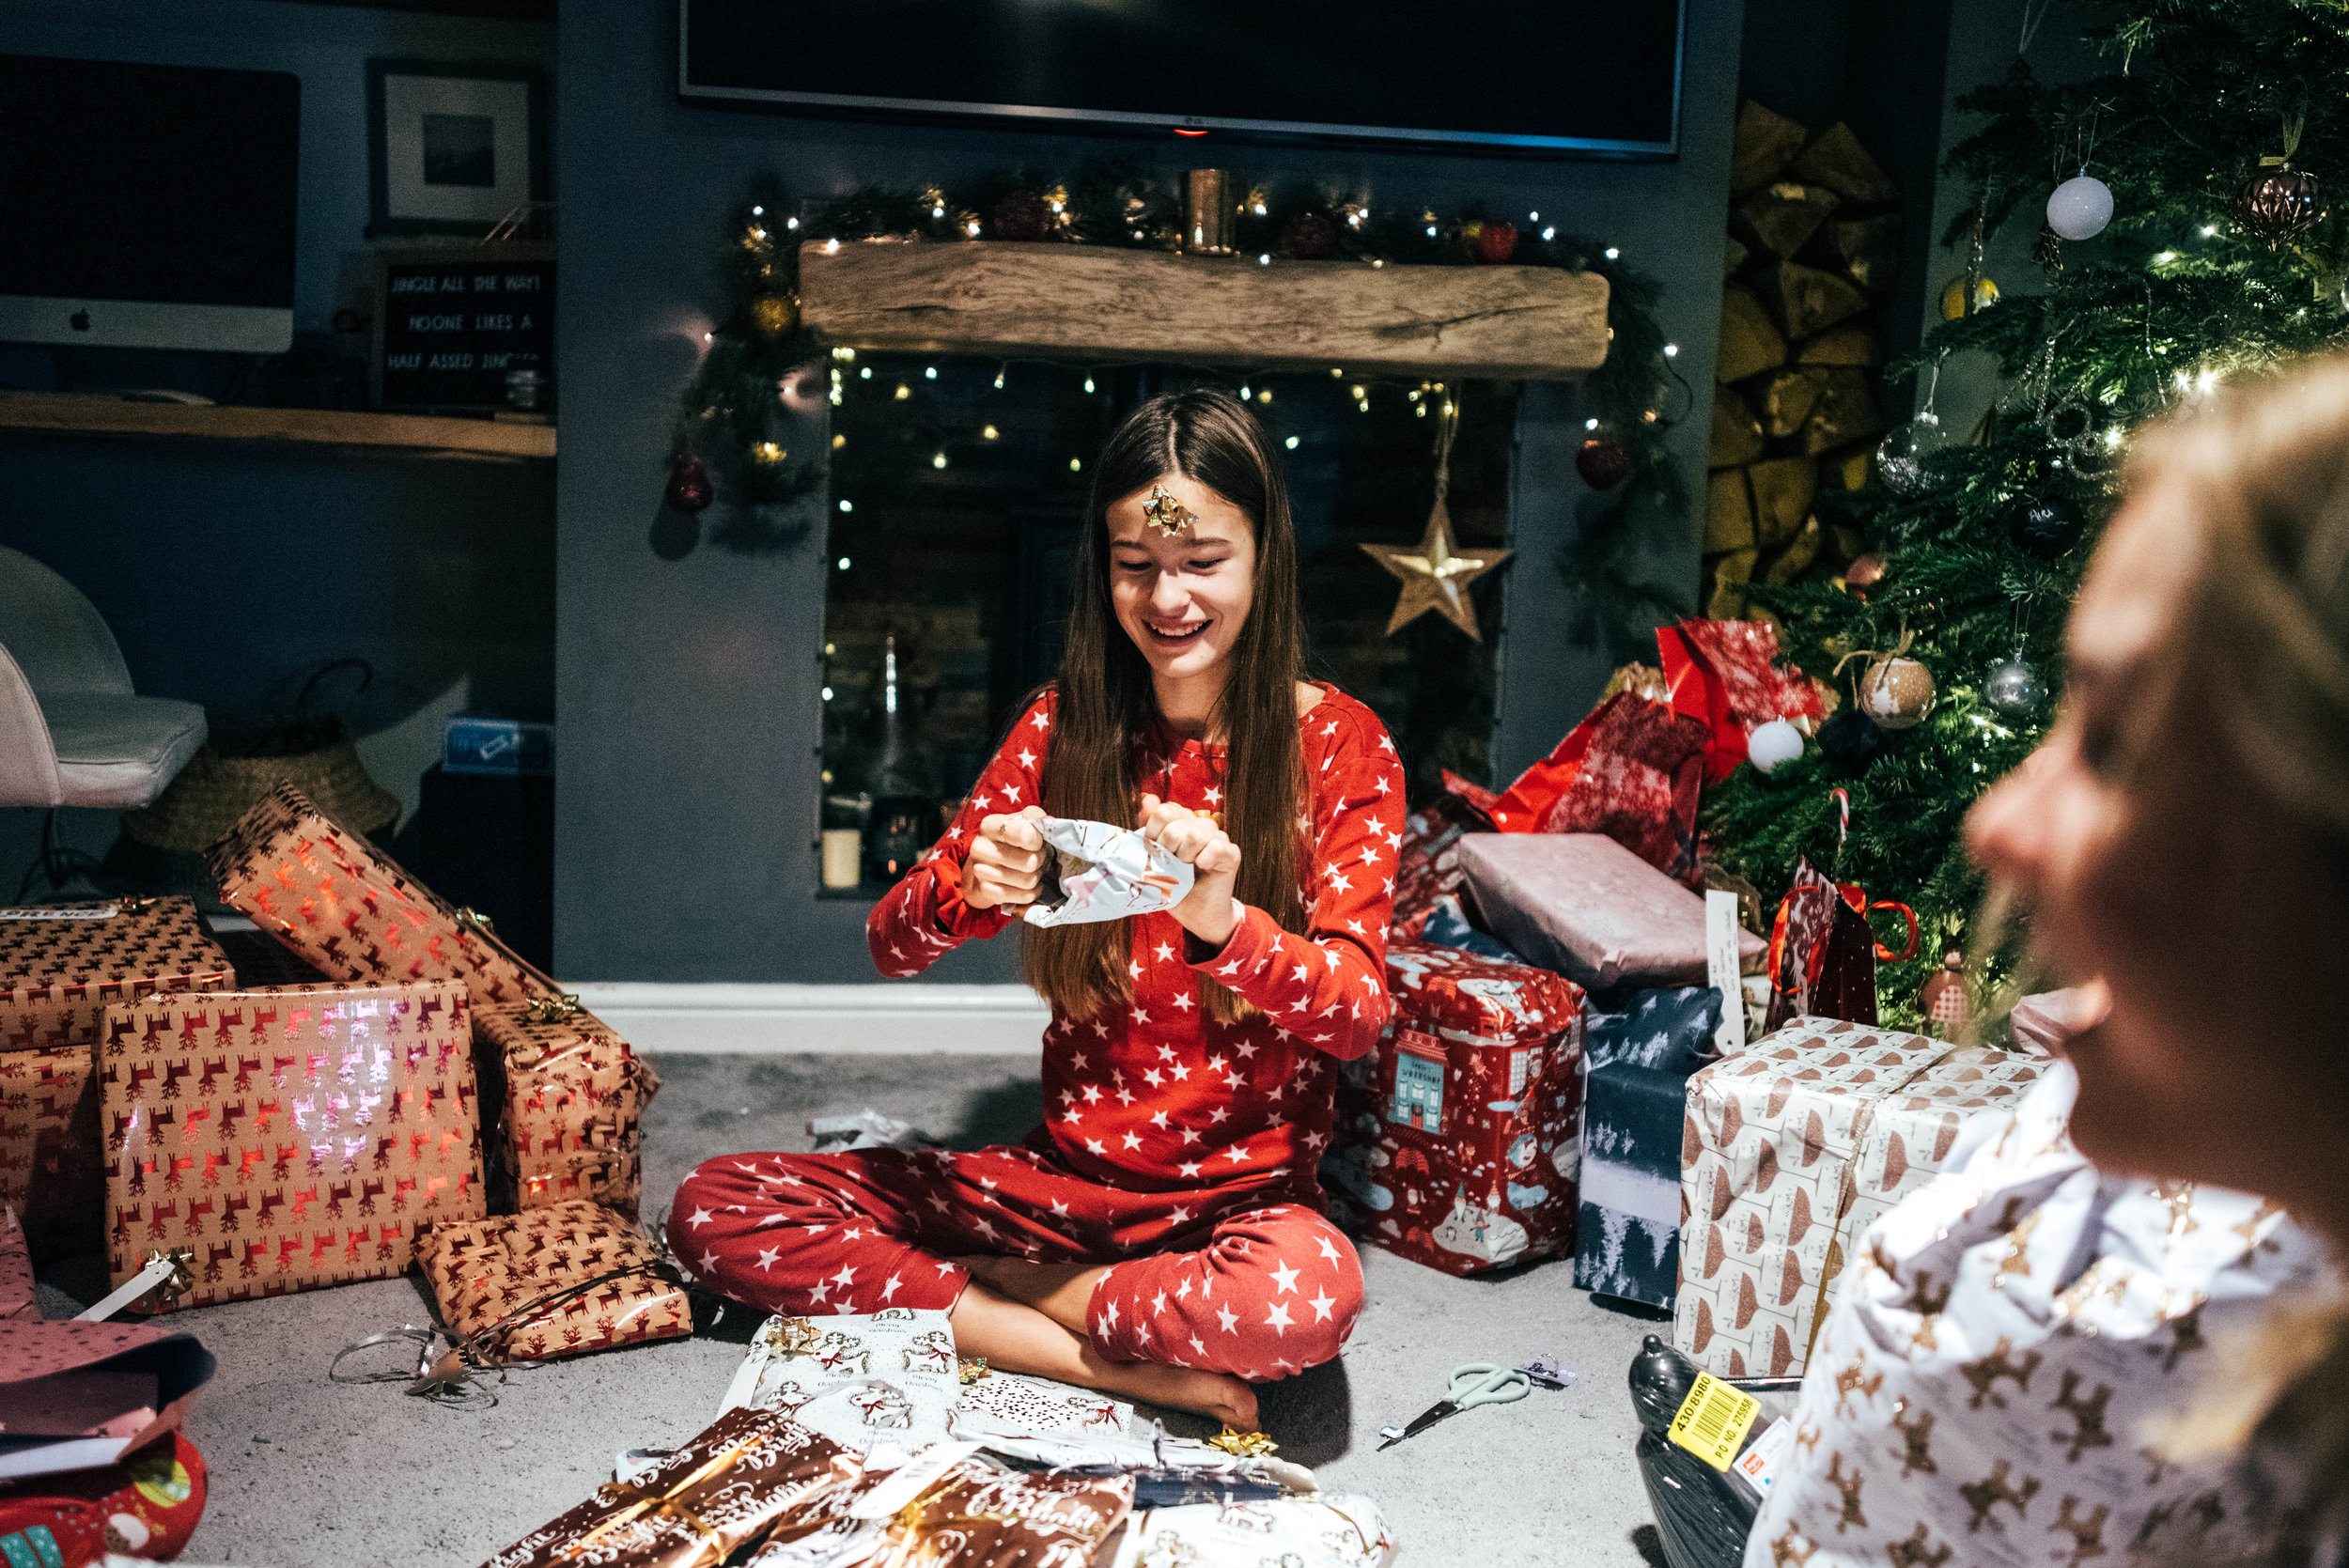 Tween girl opens Christmas present infront of fireplace Essex Documentary Wedding Family Photographer